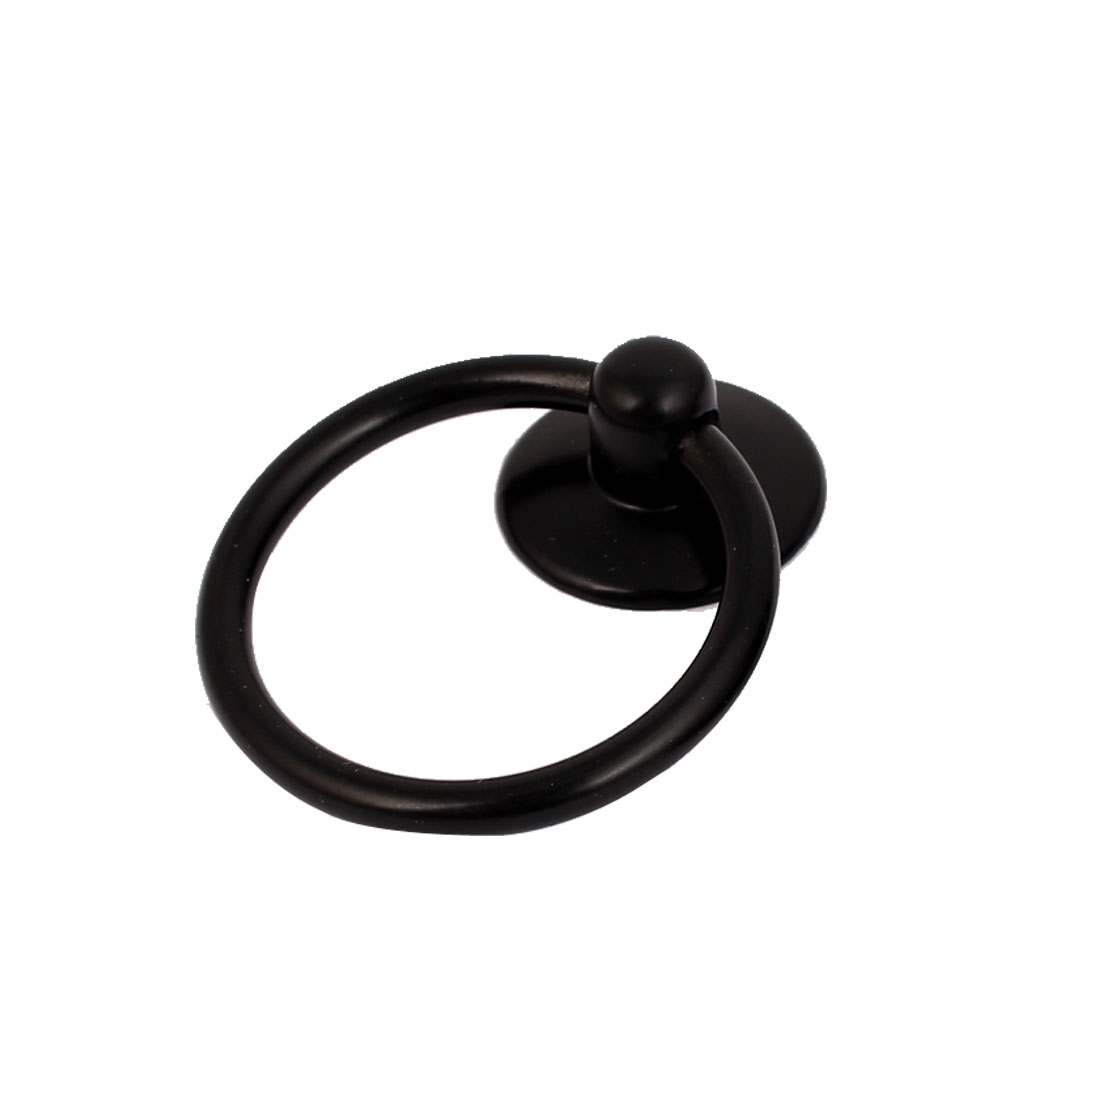 Cupboard Cabinet Drawer Dresser Rings Pulls Knob Black